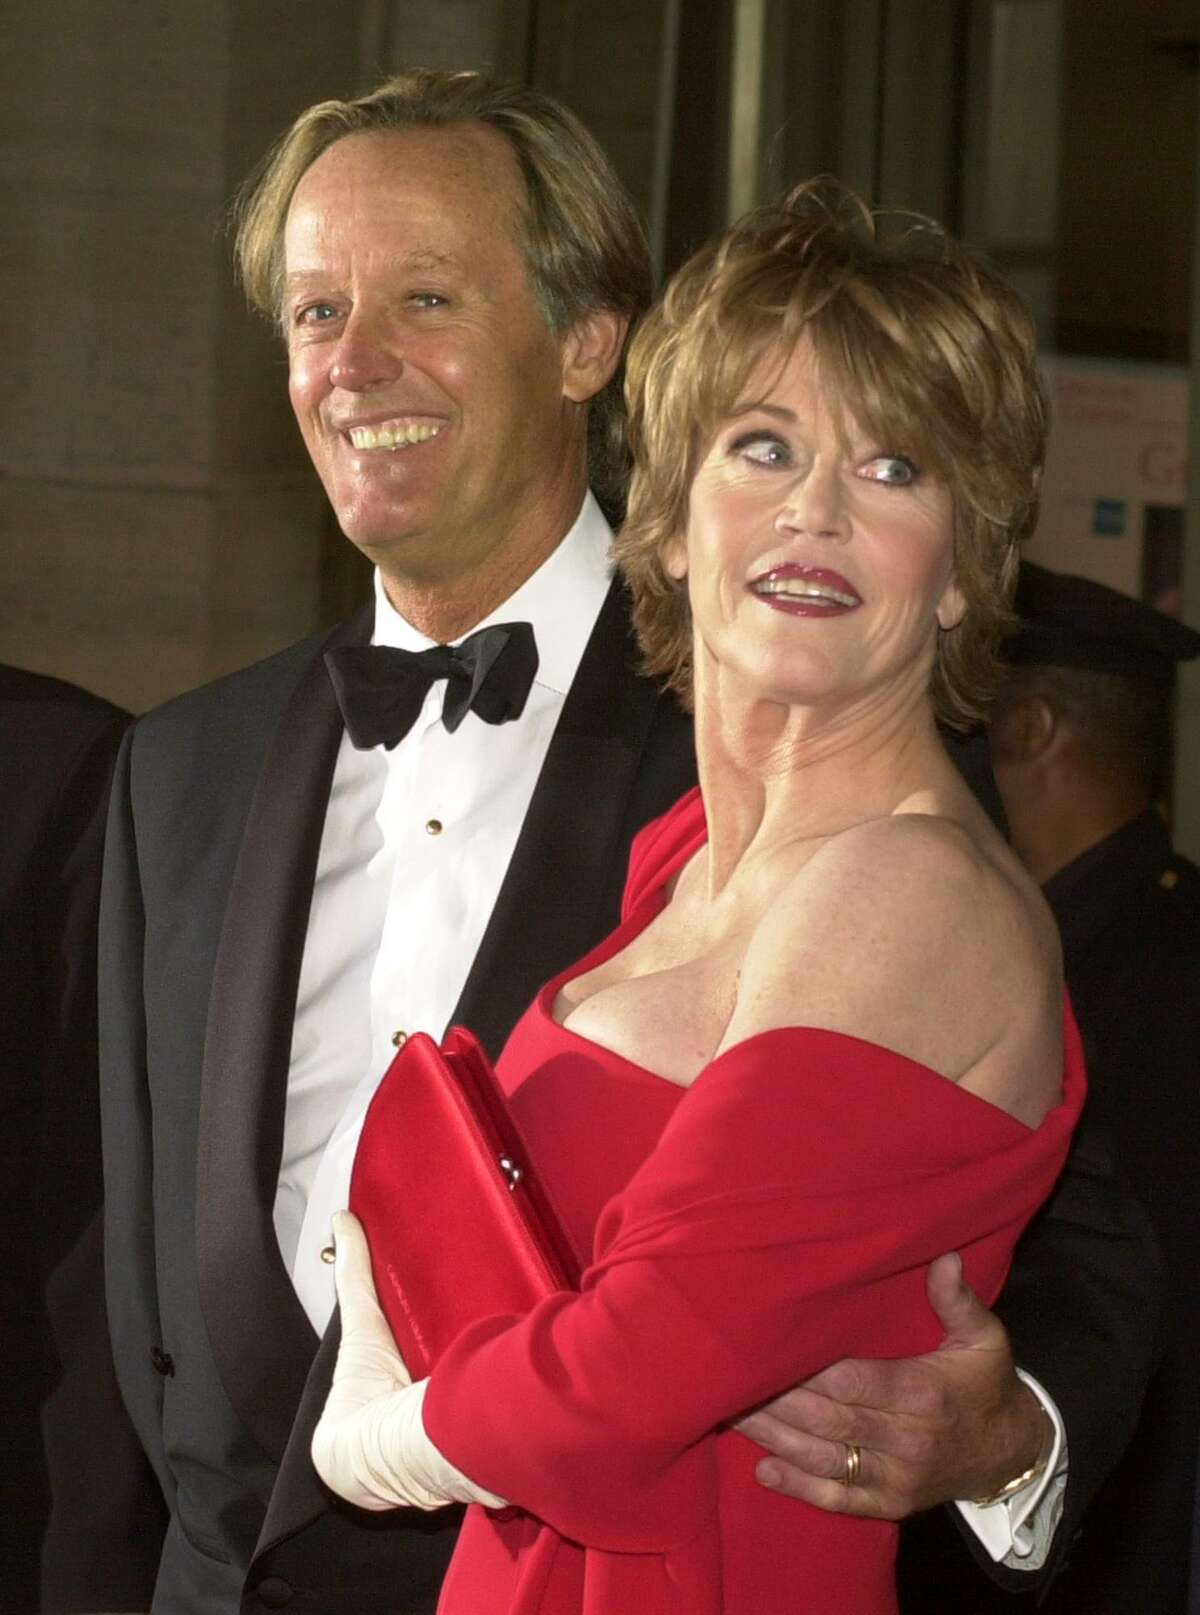 Actress Jane Fonda pauses for photographers with her brother, actor Peter Fonda, as the pair arrives for the Film Society of Lincoln Center tribute in her honor, Monday, May 7, 2001, in New York.